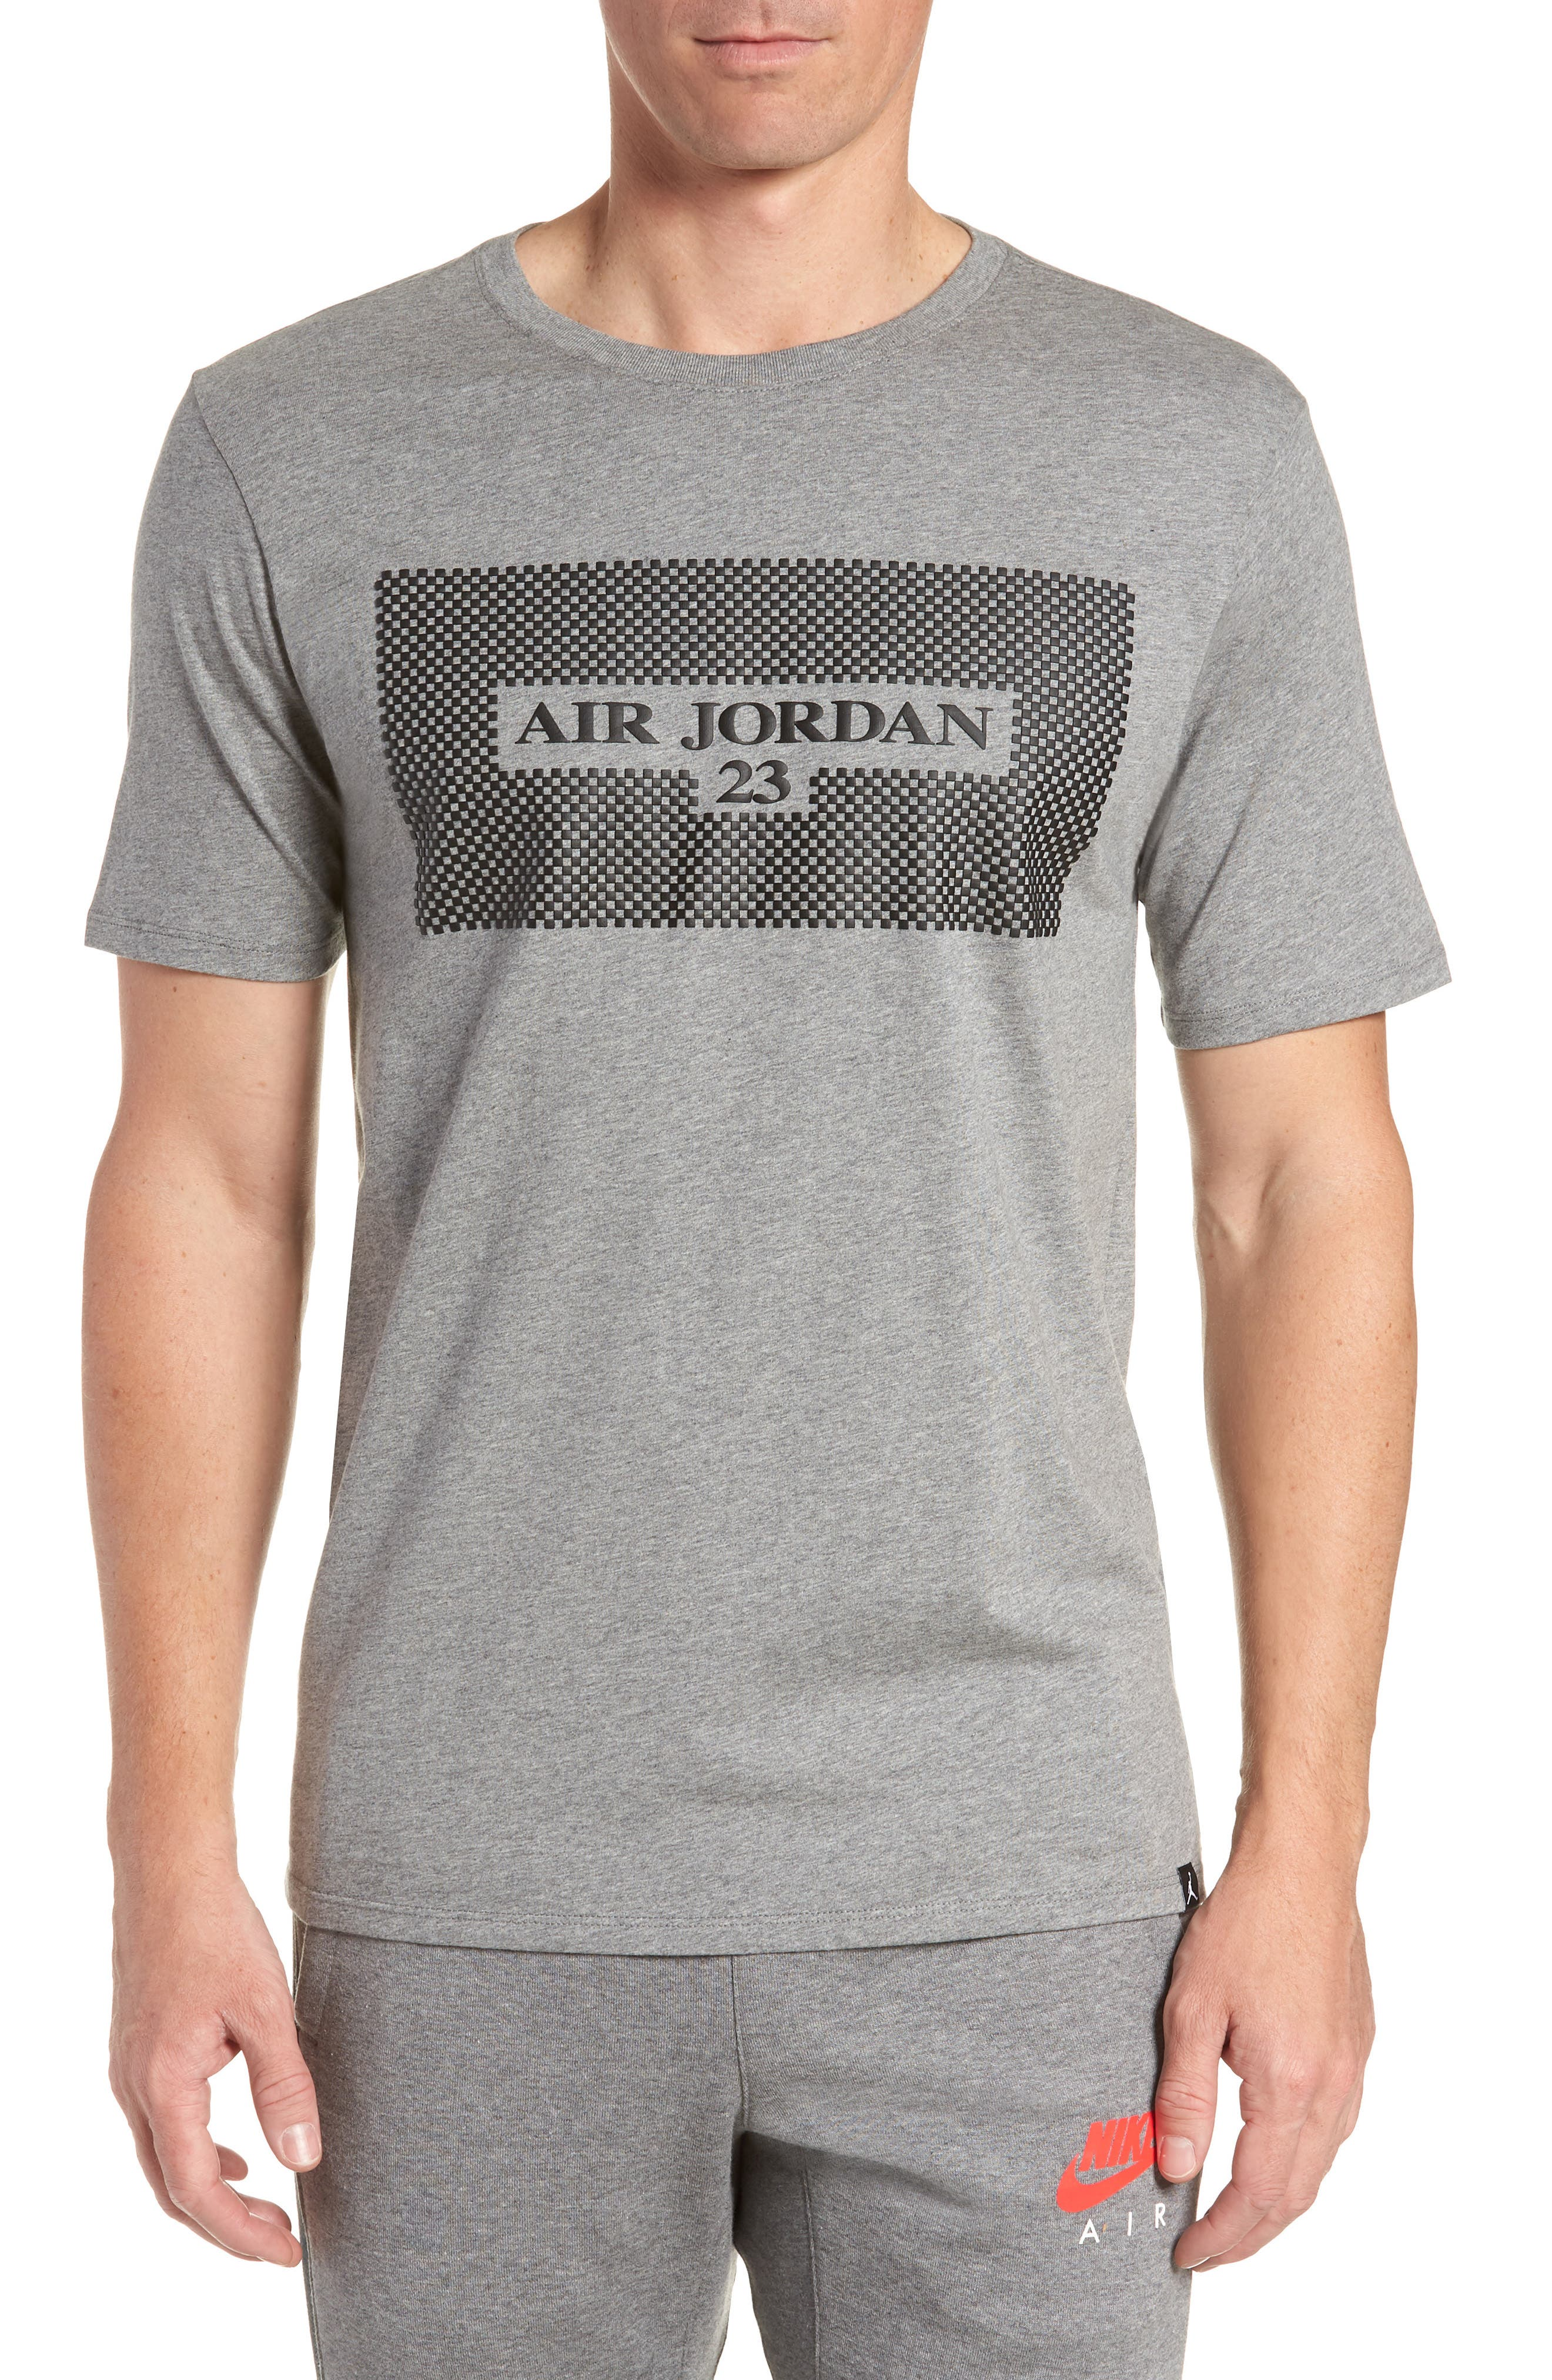 Air Jordan 23 T-Shirt,                         Main,                         color, Carbon Heather/ Black